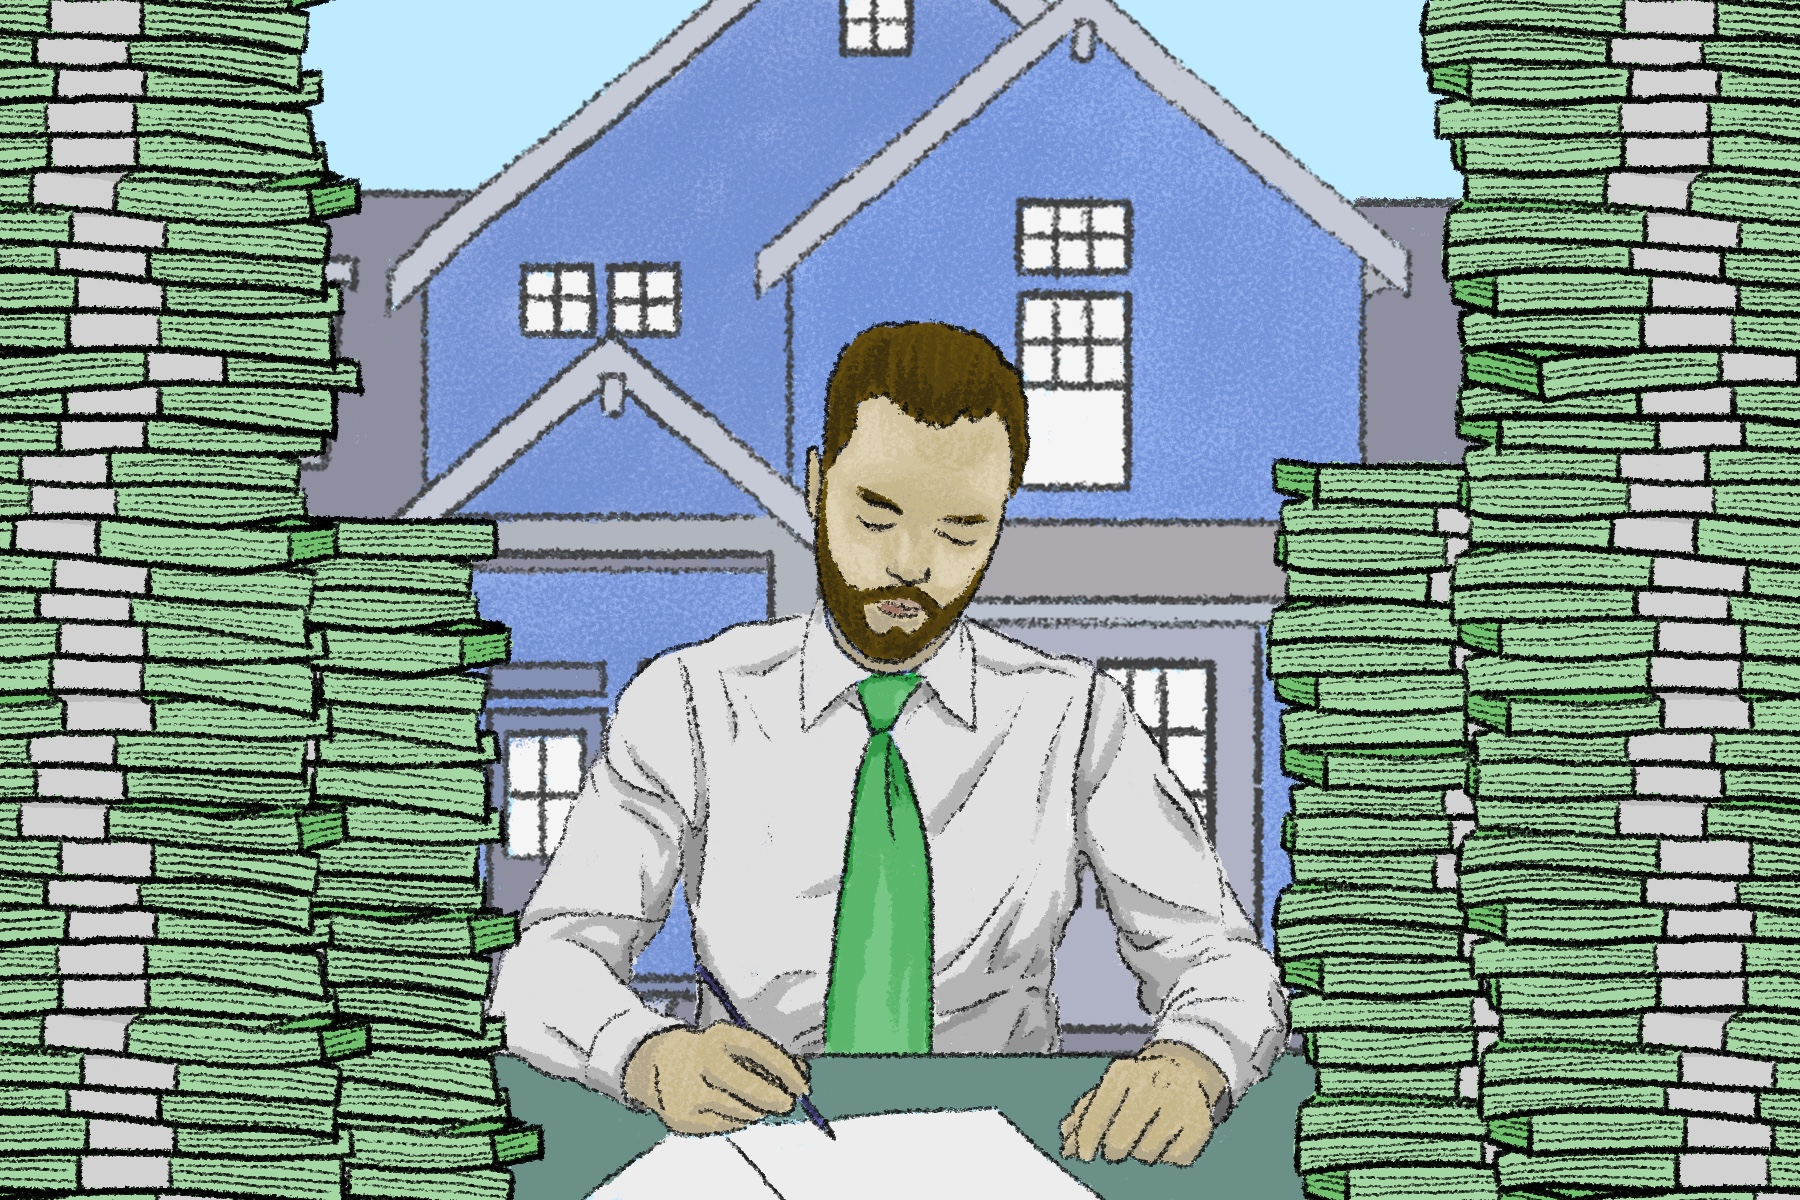 An illustration of a real estate agent surrounded by towers of money